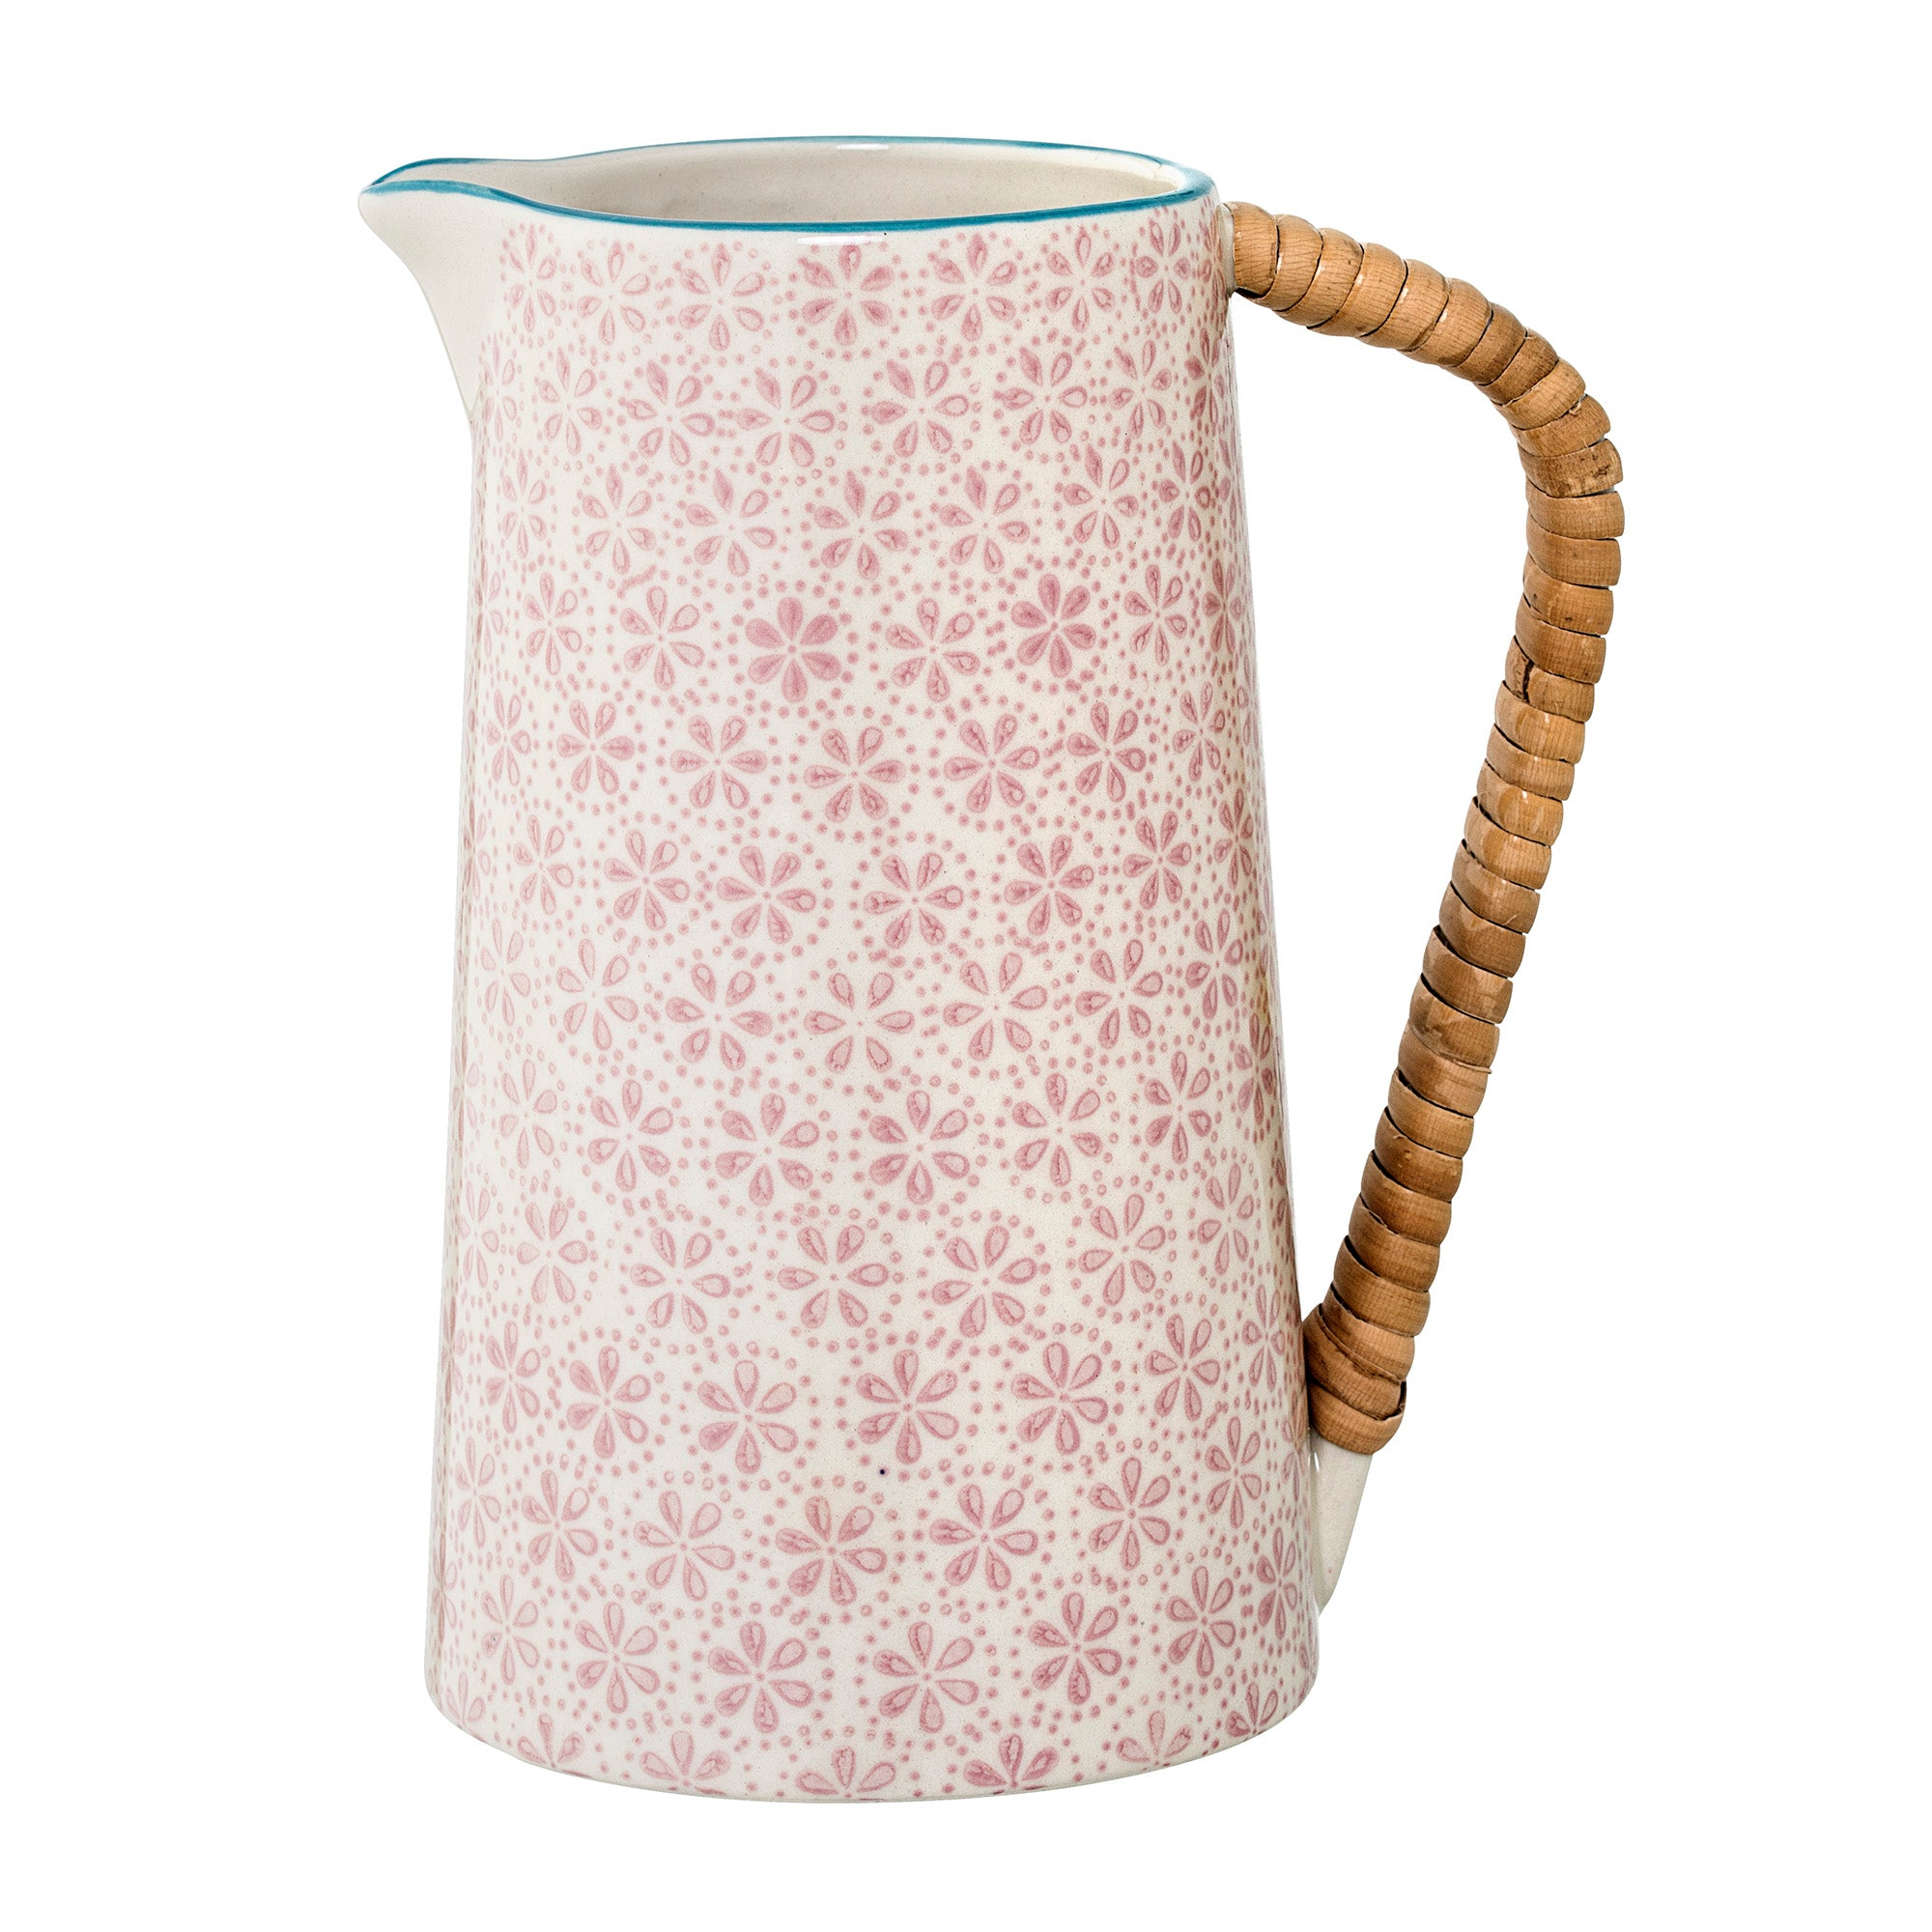 Bloomingville Rose Patrizia Jug Homeware- a-fly-went-by.myshopify.com